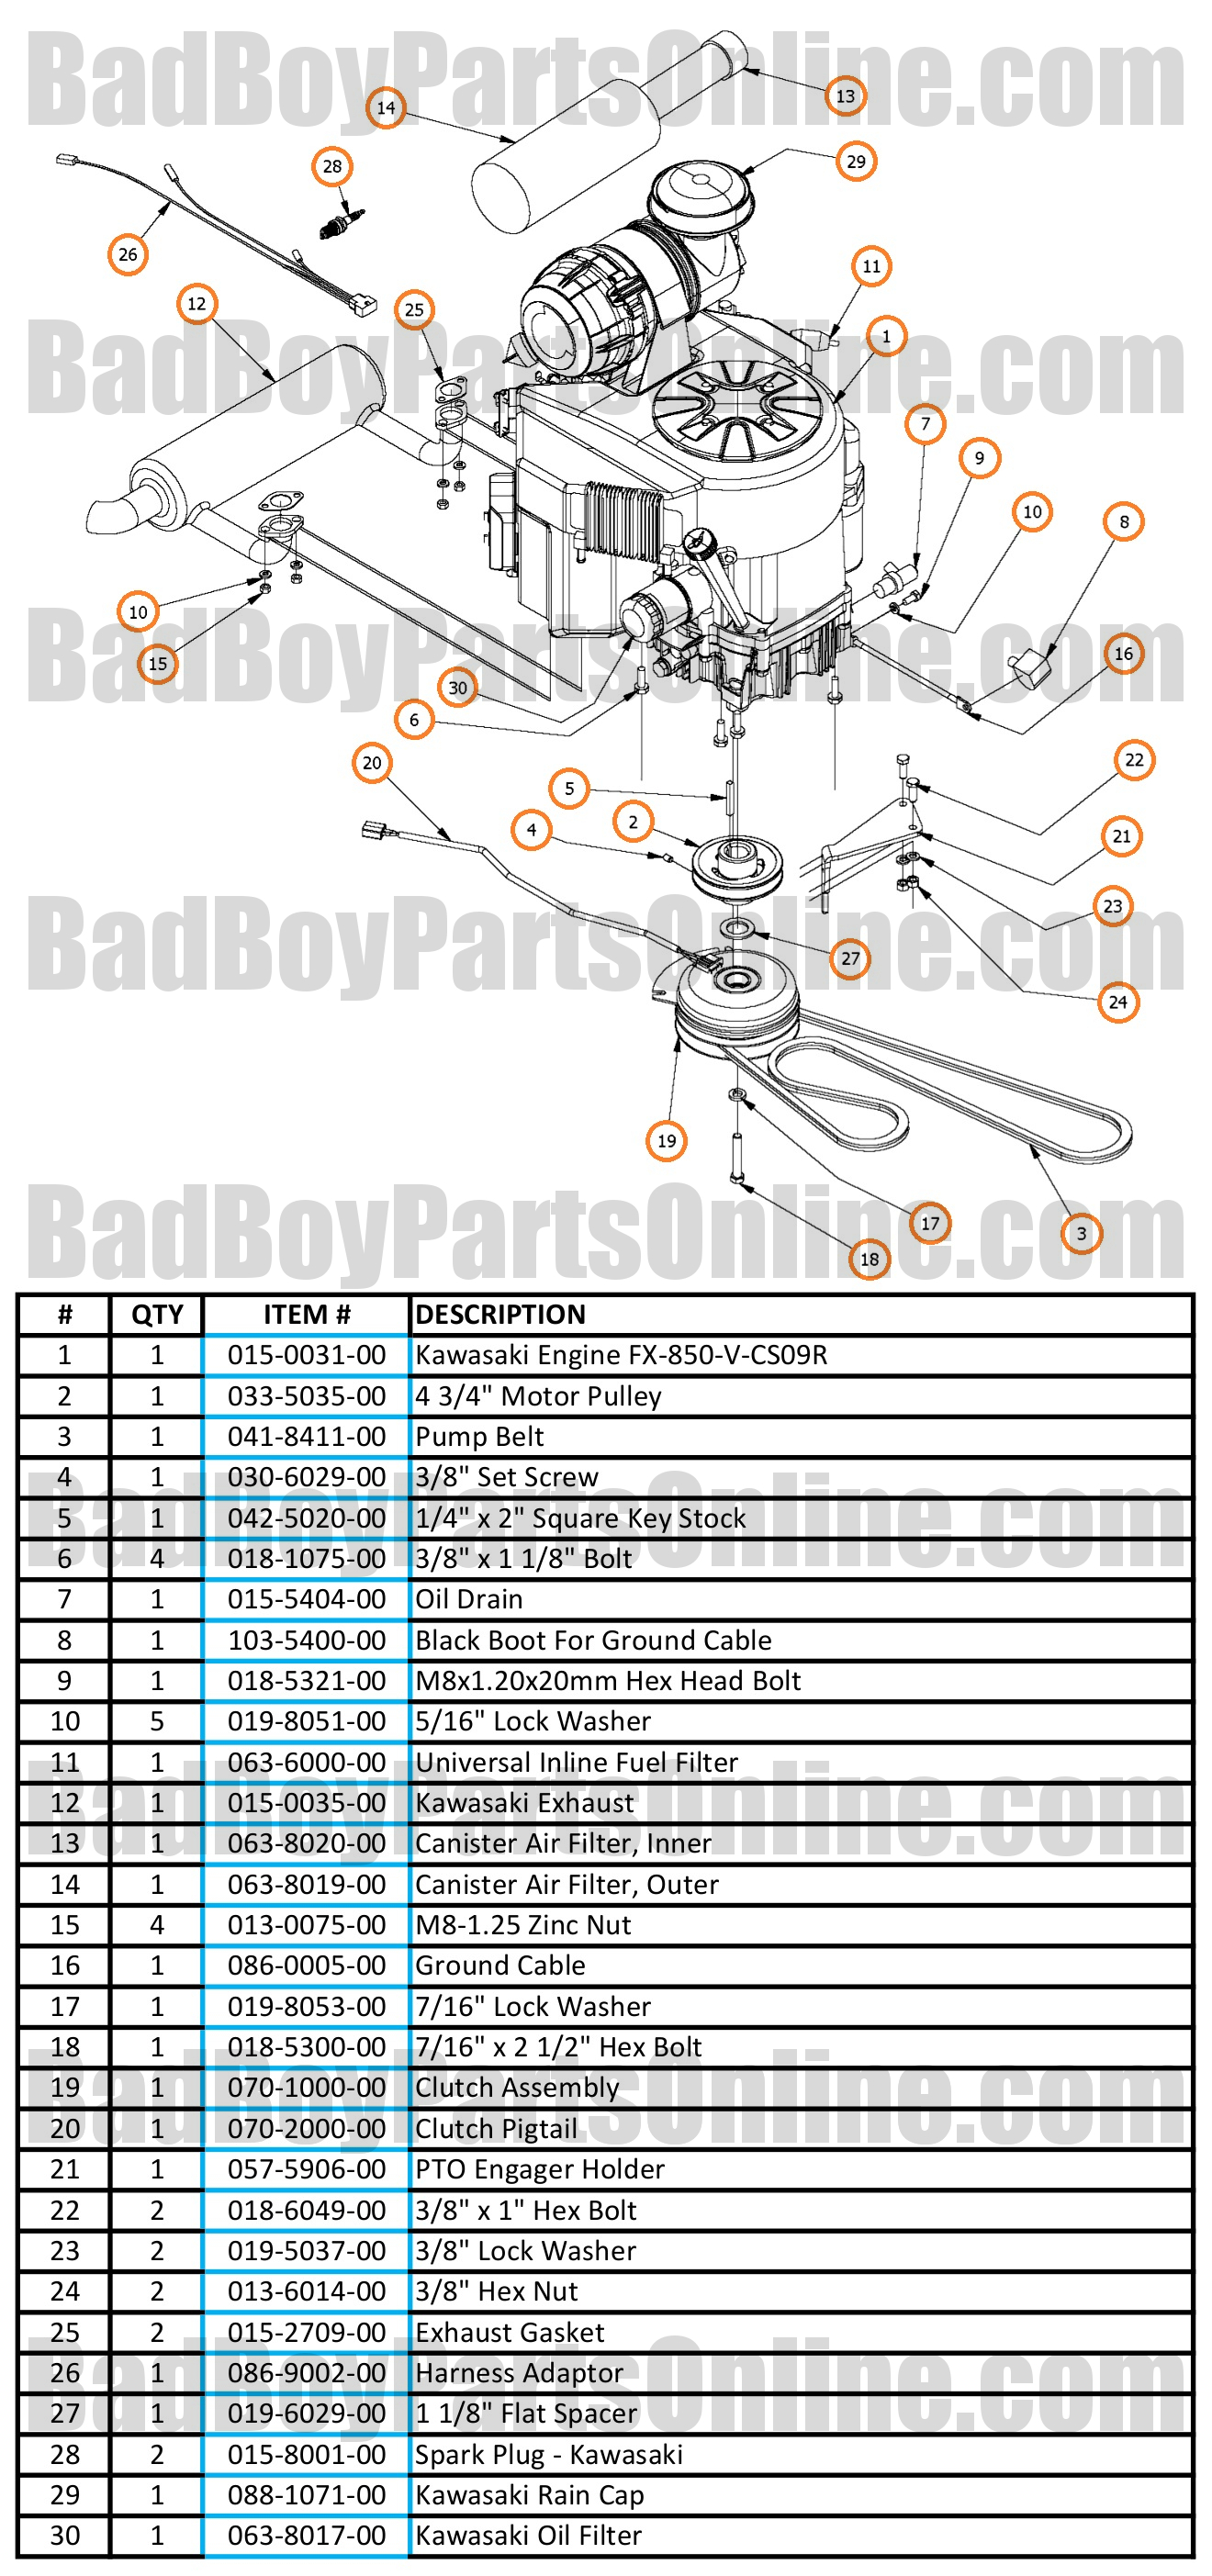 2017 outlaw xp engine - kawasaki fx850v parts and schematic  bad boy parts online